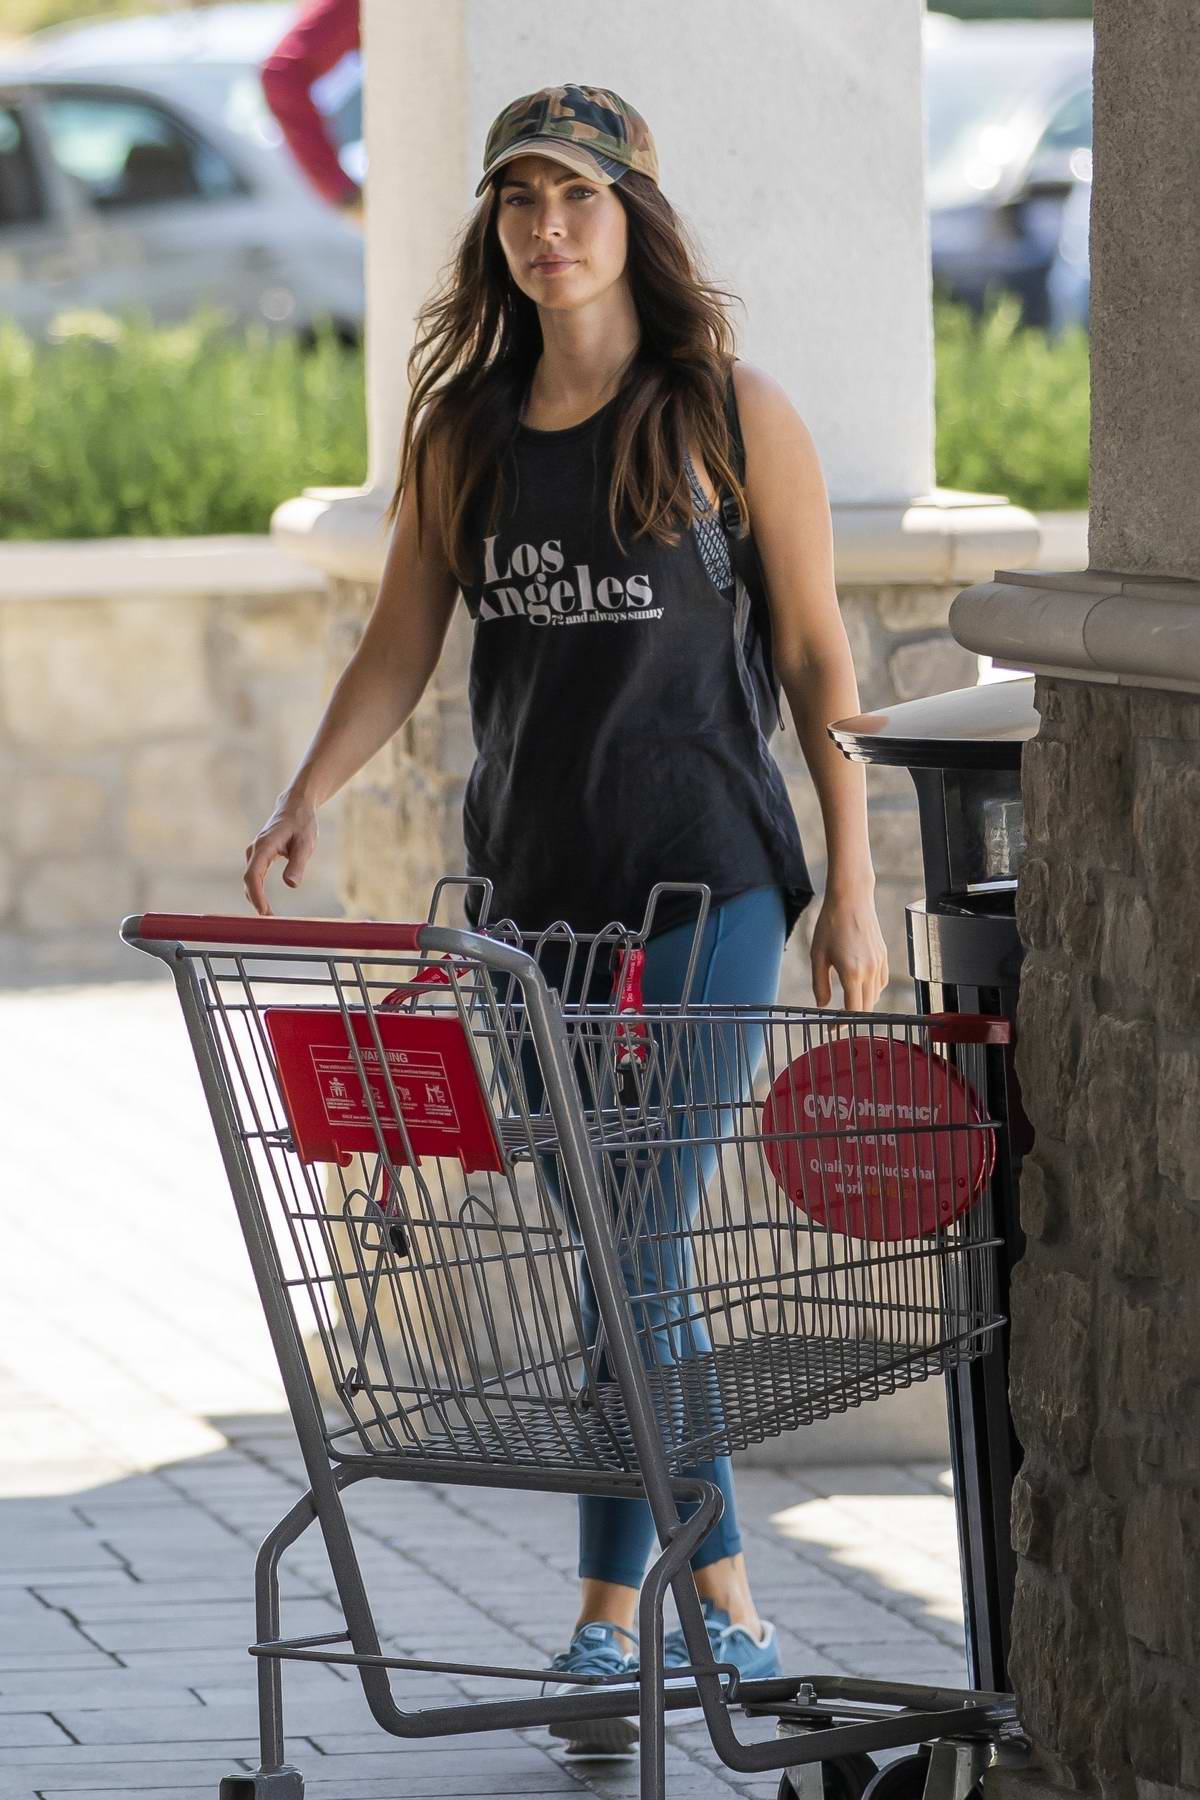 Megan Fox keeps it casual in a black tank and blue leggings while stopping by CVS pharmacy in Los Angeles